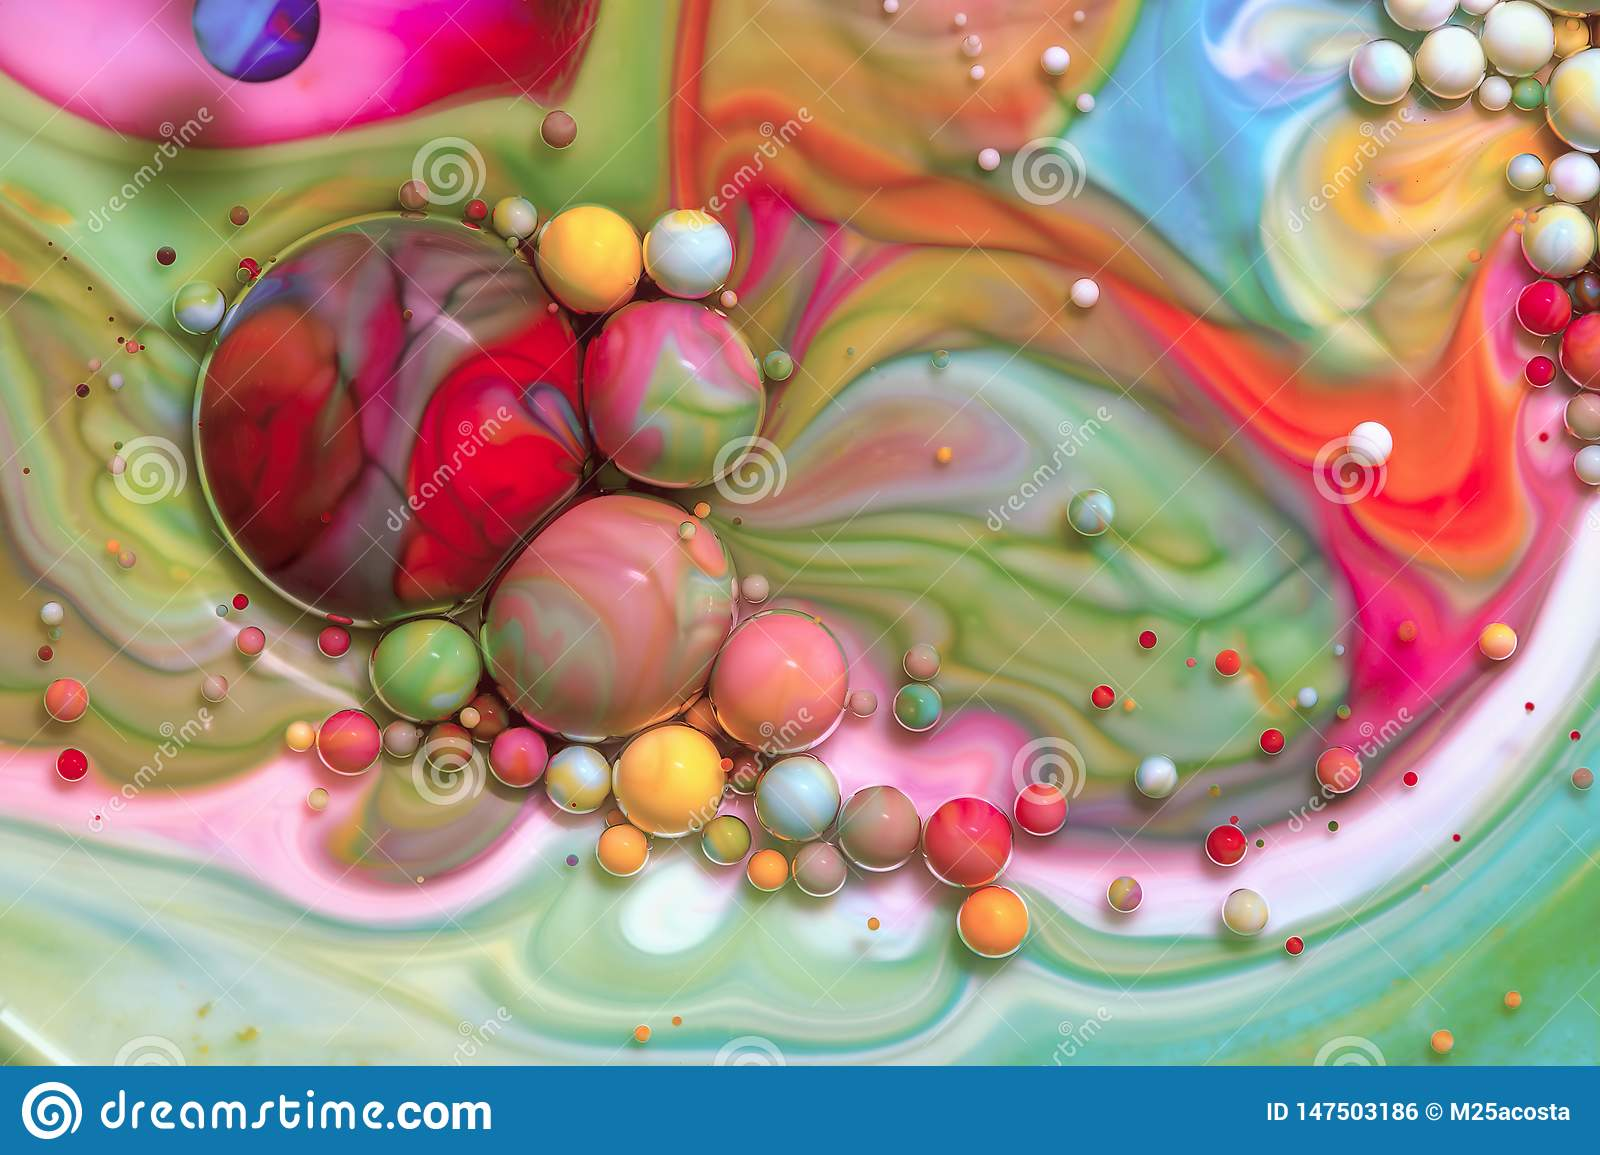 Macro photography of colorful bubbles LXIX